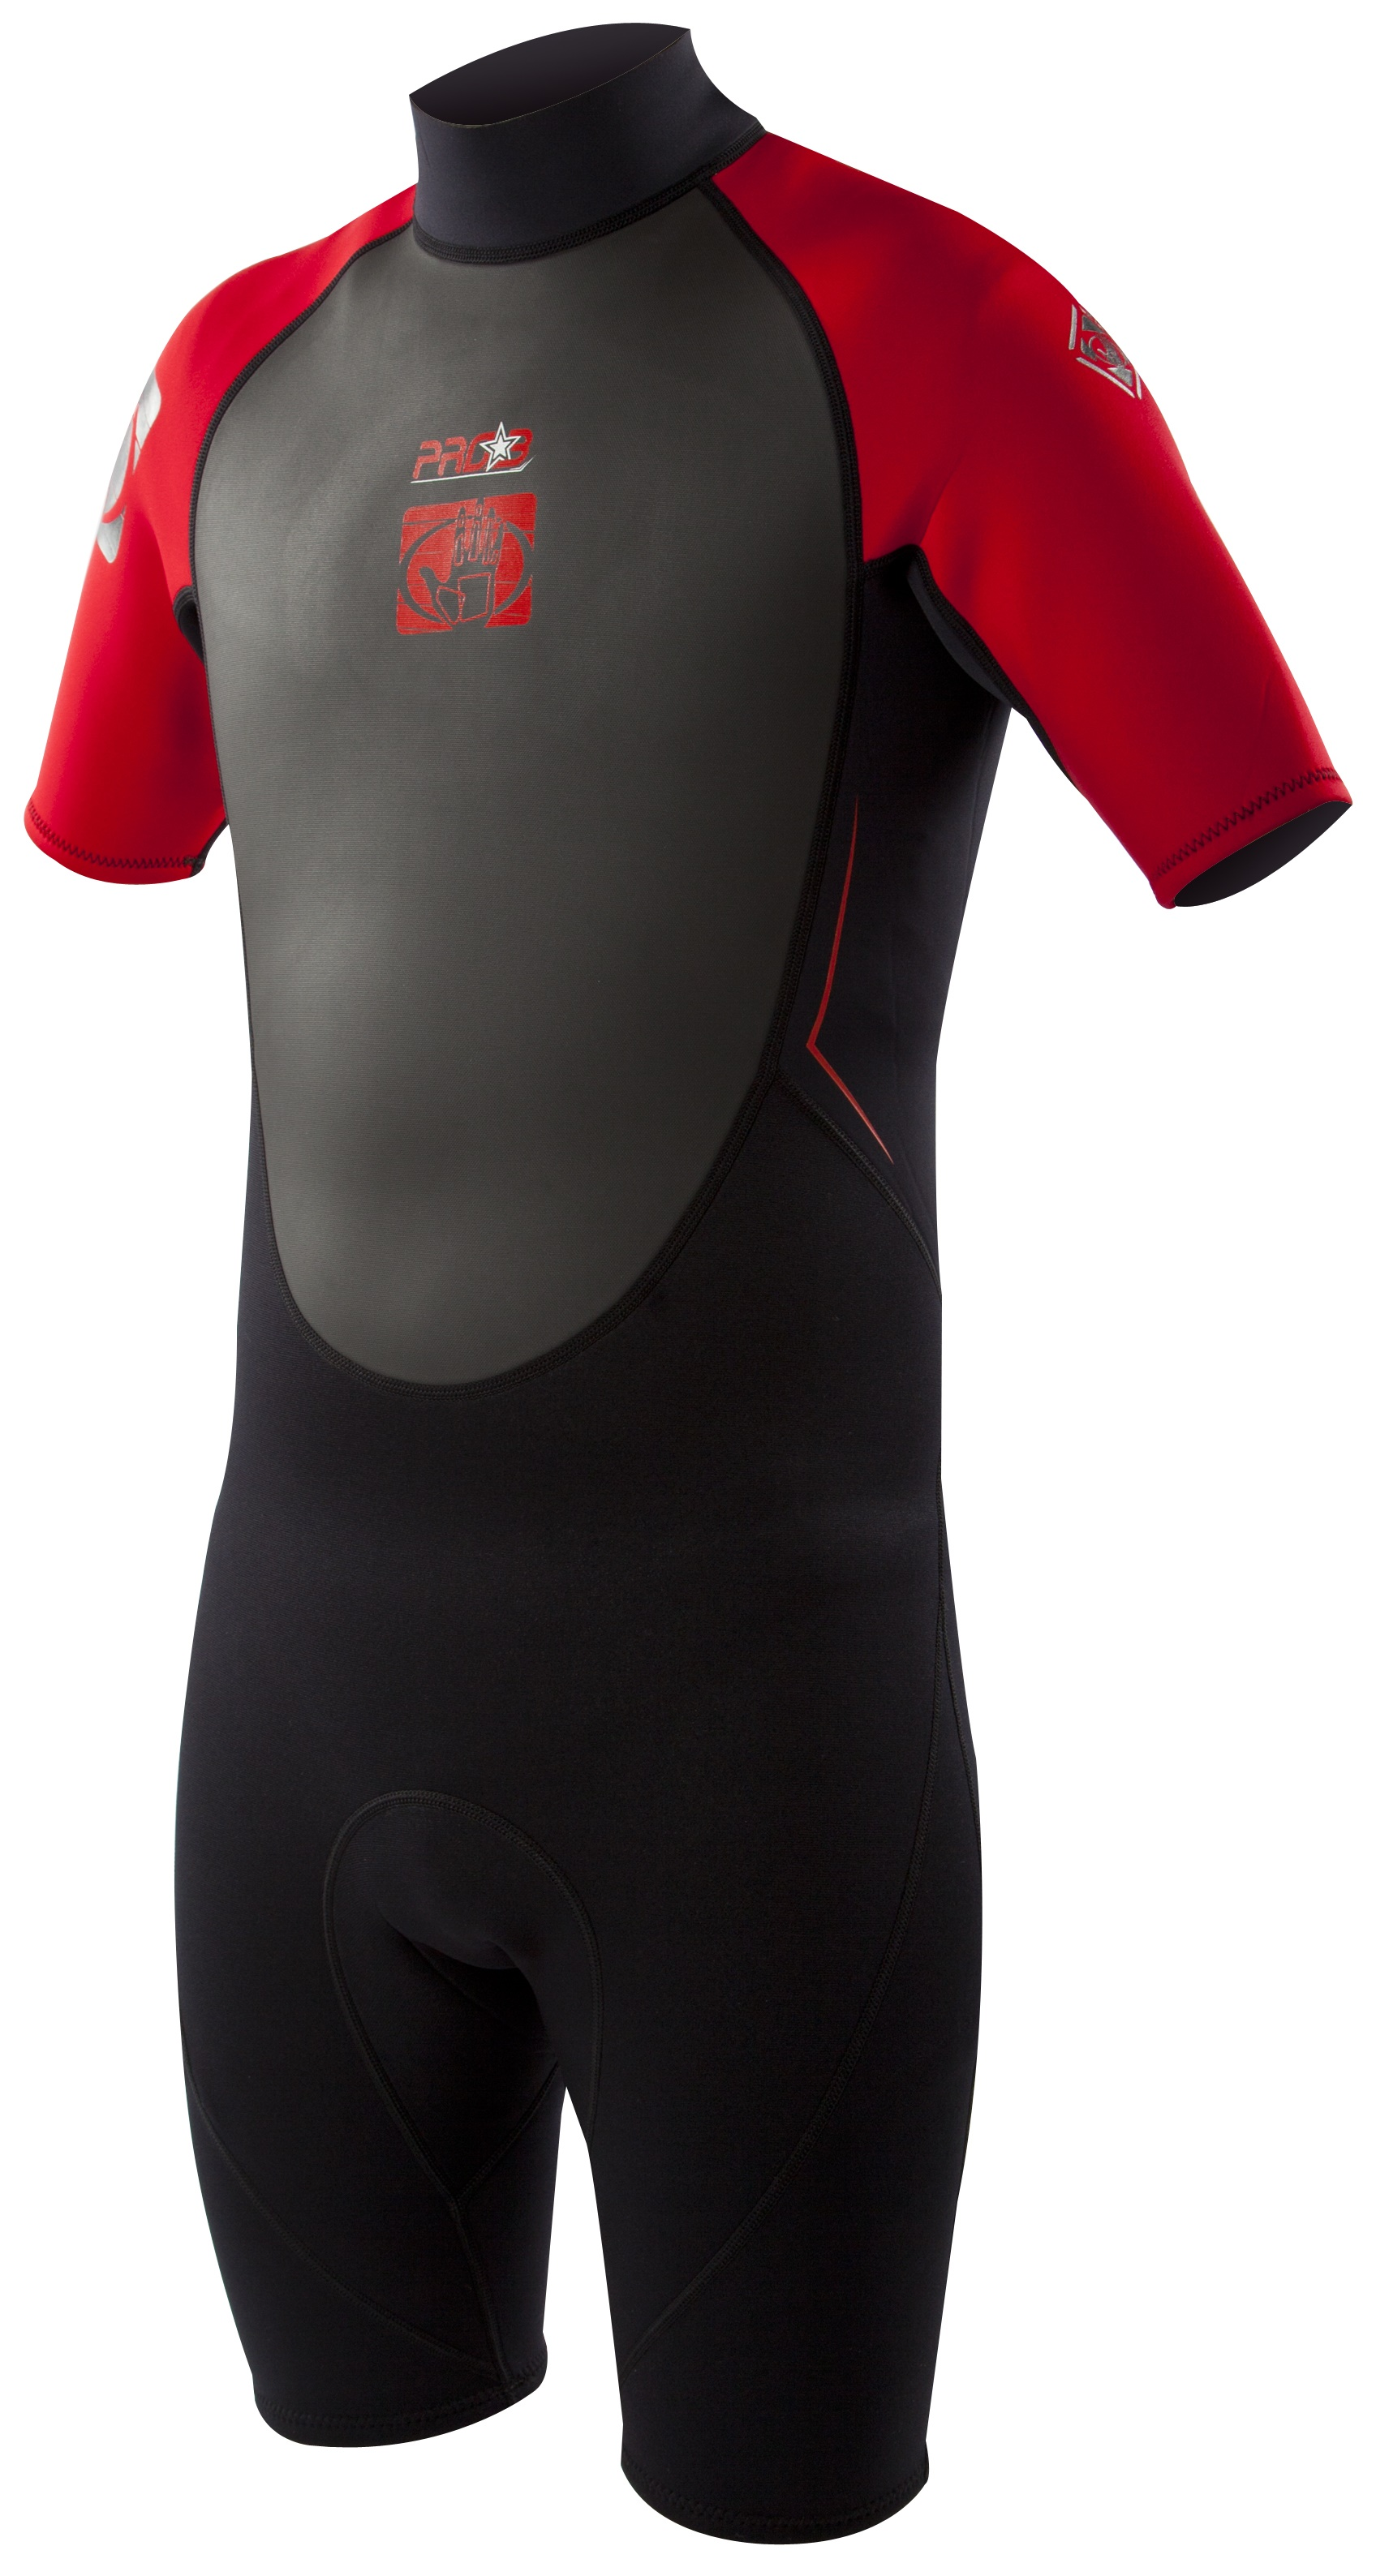 Body Glove Men's Pro3 2/1mm Springsuit Wetsuit - Black/Red